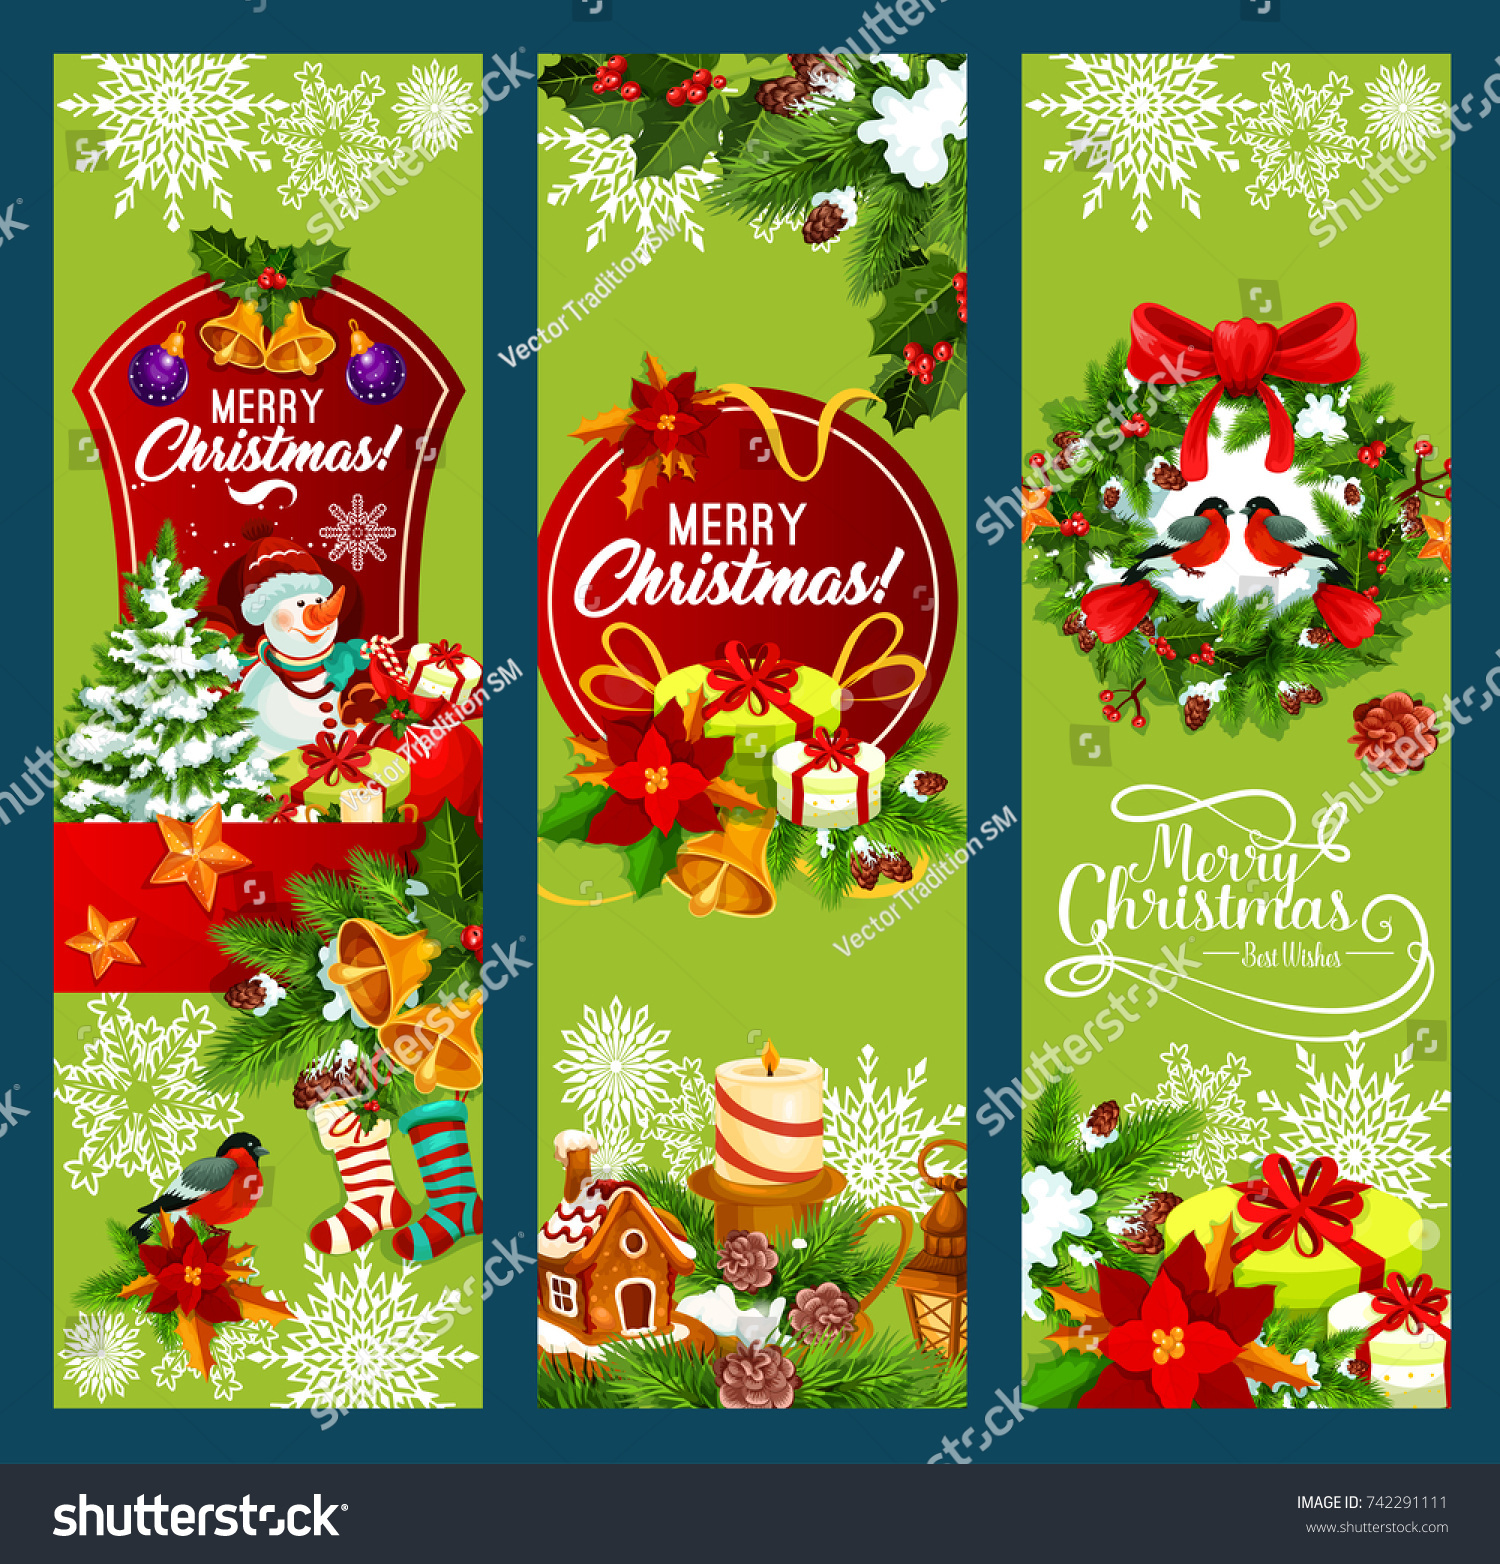 Merry christmas holiday greeting banners design stock vector merry christmas holiday greeting banners design vector santa gift bag and snowman stockings and kristyandbryce Gallery